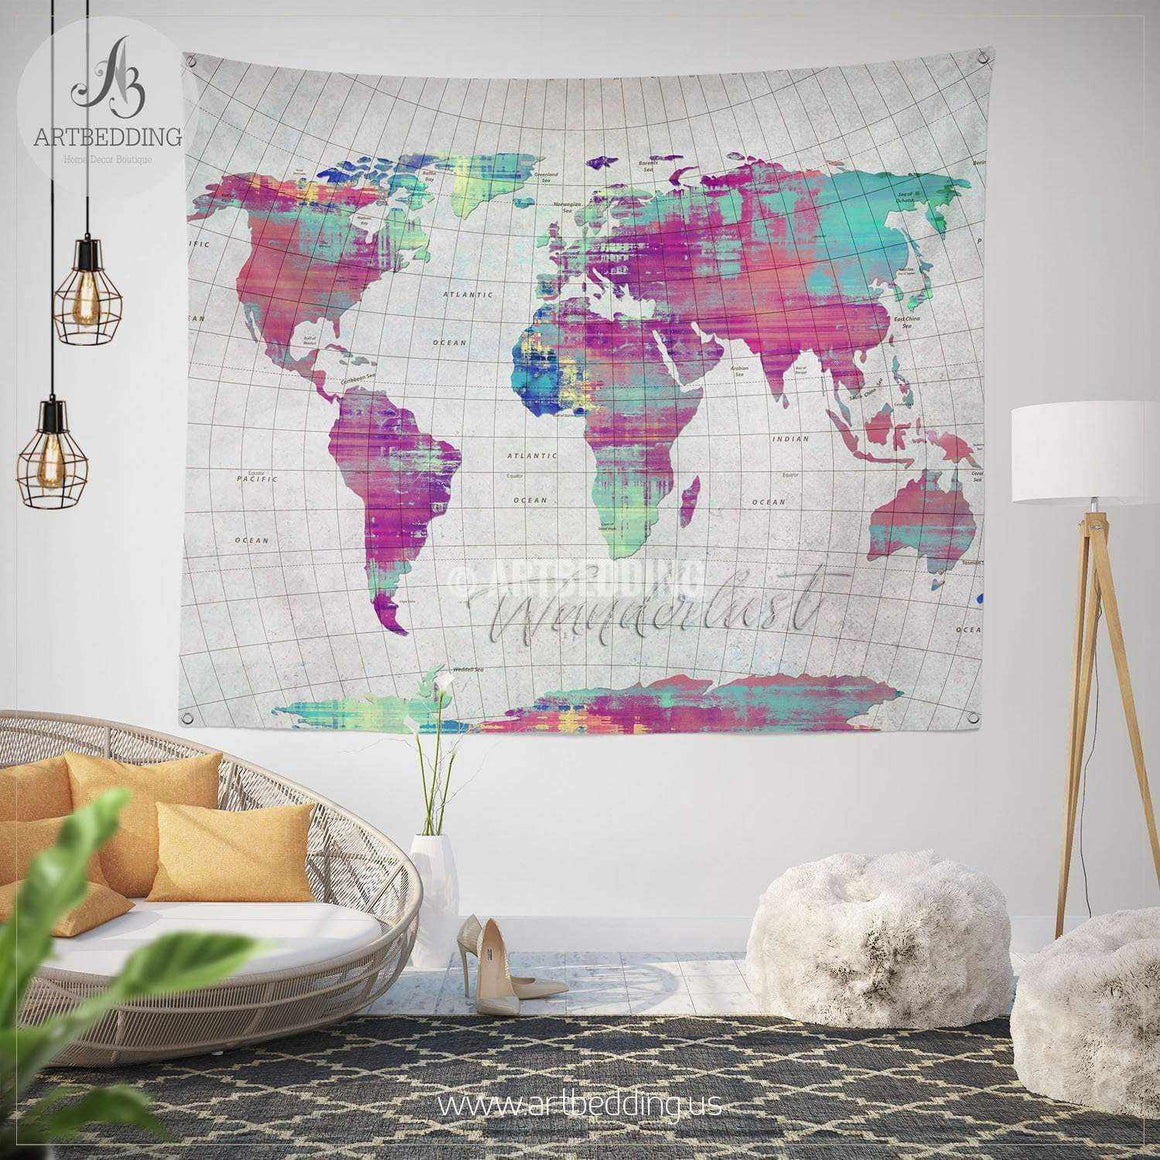 Wanderlust map wall Tapestry, World map grunge wanderlust wall hanging, Grunge pop art world map wall tapestries, bohemian wall decor Tapestry